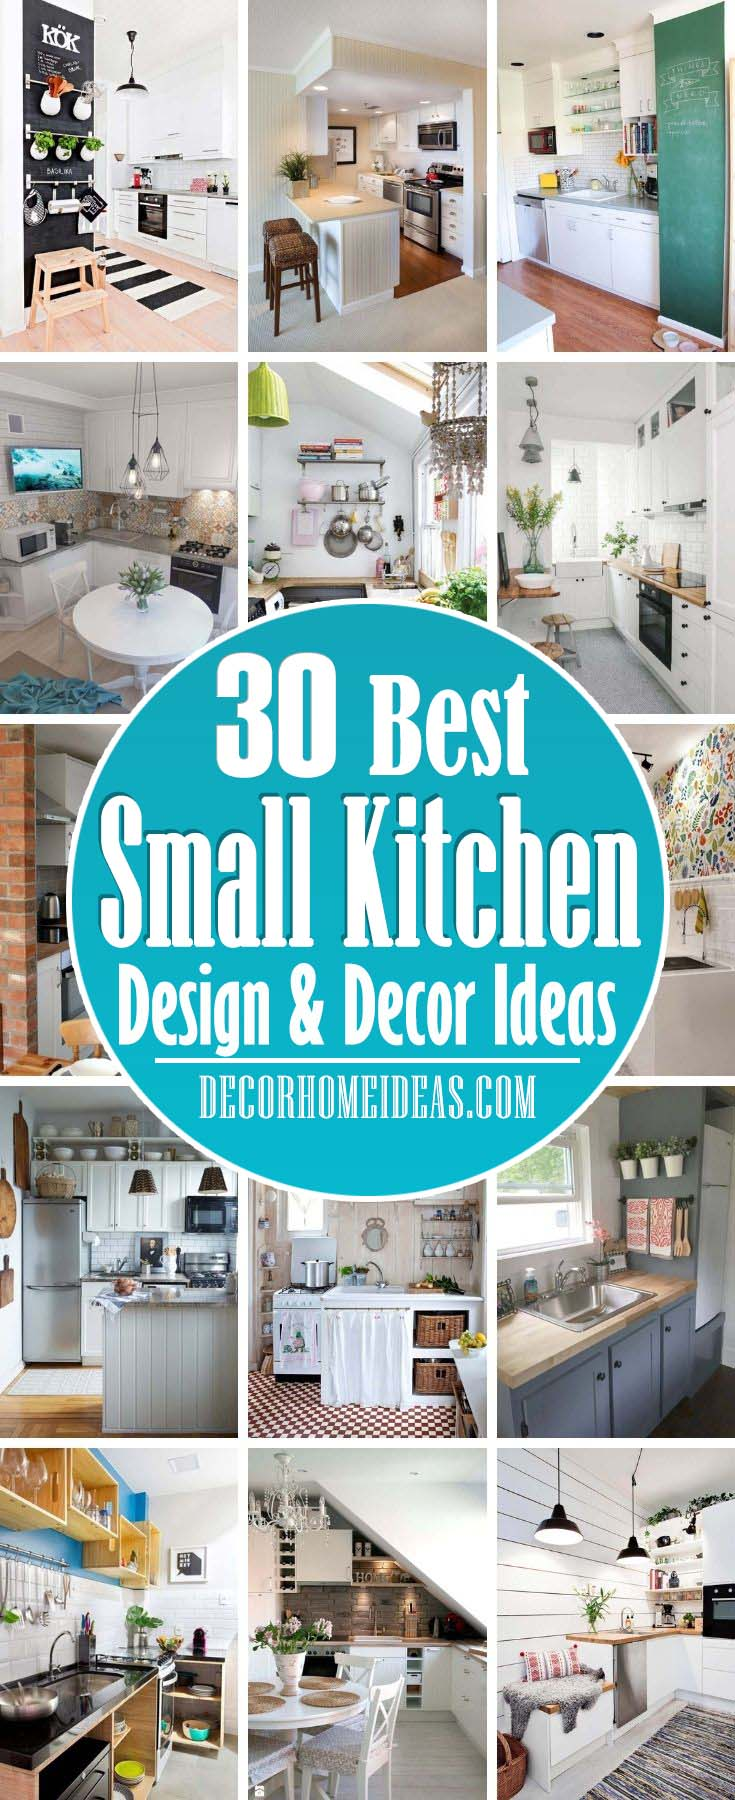 Best Small Kitchen Design And Decor Ideas. Having a small kitchen isn't the issue—it's having a cluttered kitchen that'll drive you insane. These decor ideas will maximize your space's efficiency. #decorhomeideas